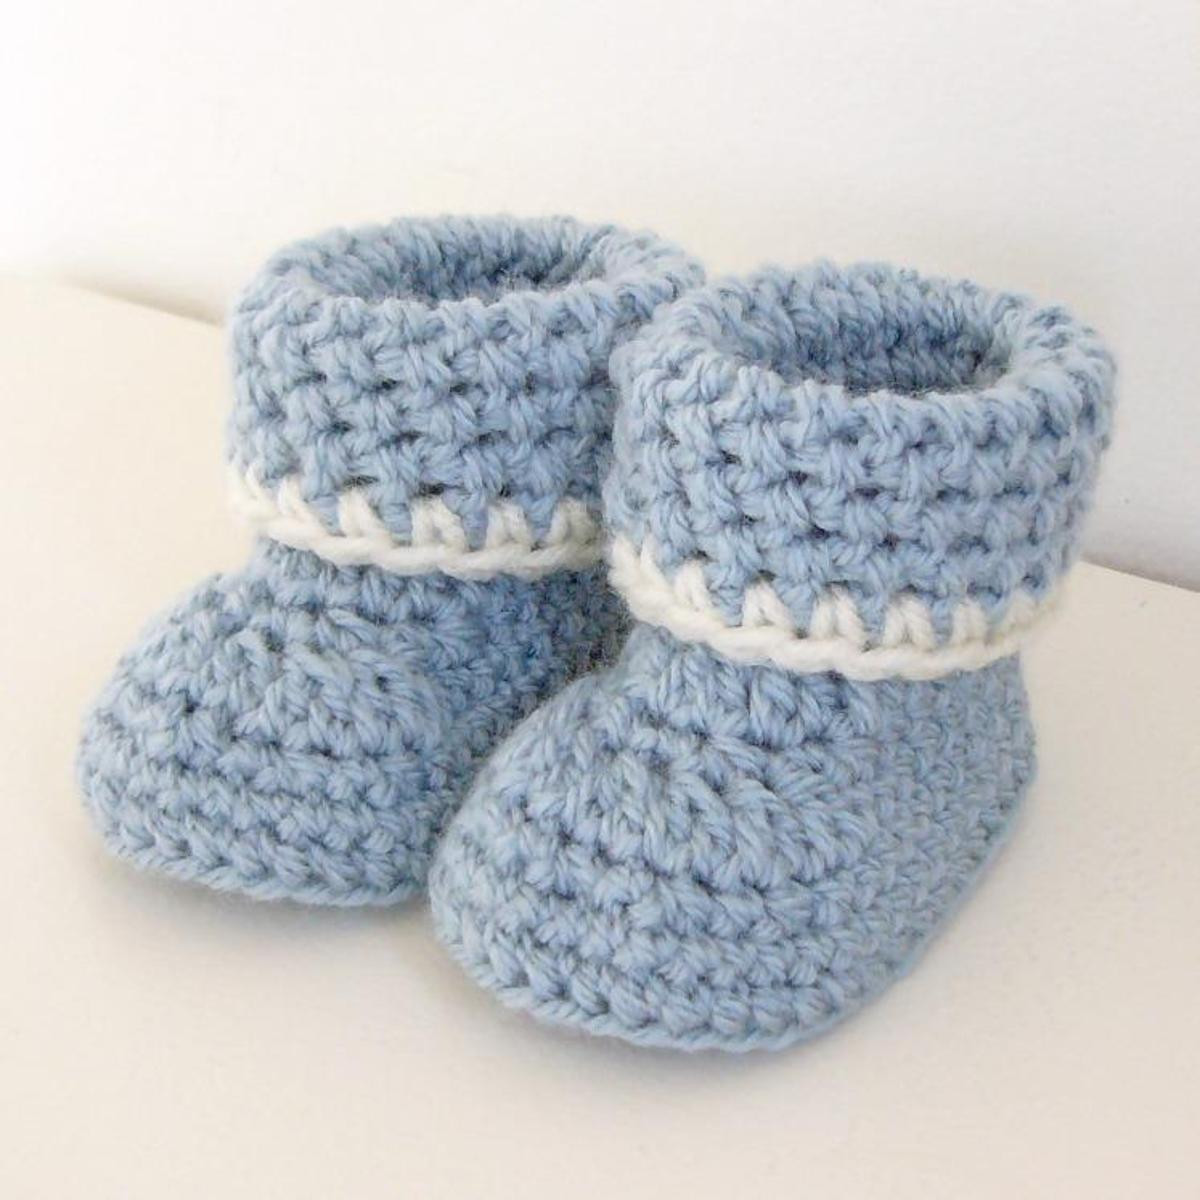 Easy Crochet Baby Booties Awesome Cozy Cuffs Crochet Baby Booties Pattern Of Great 49 Ideas Easy Crochet Baby Booties